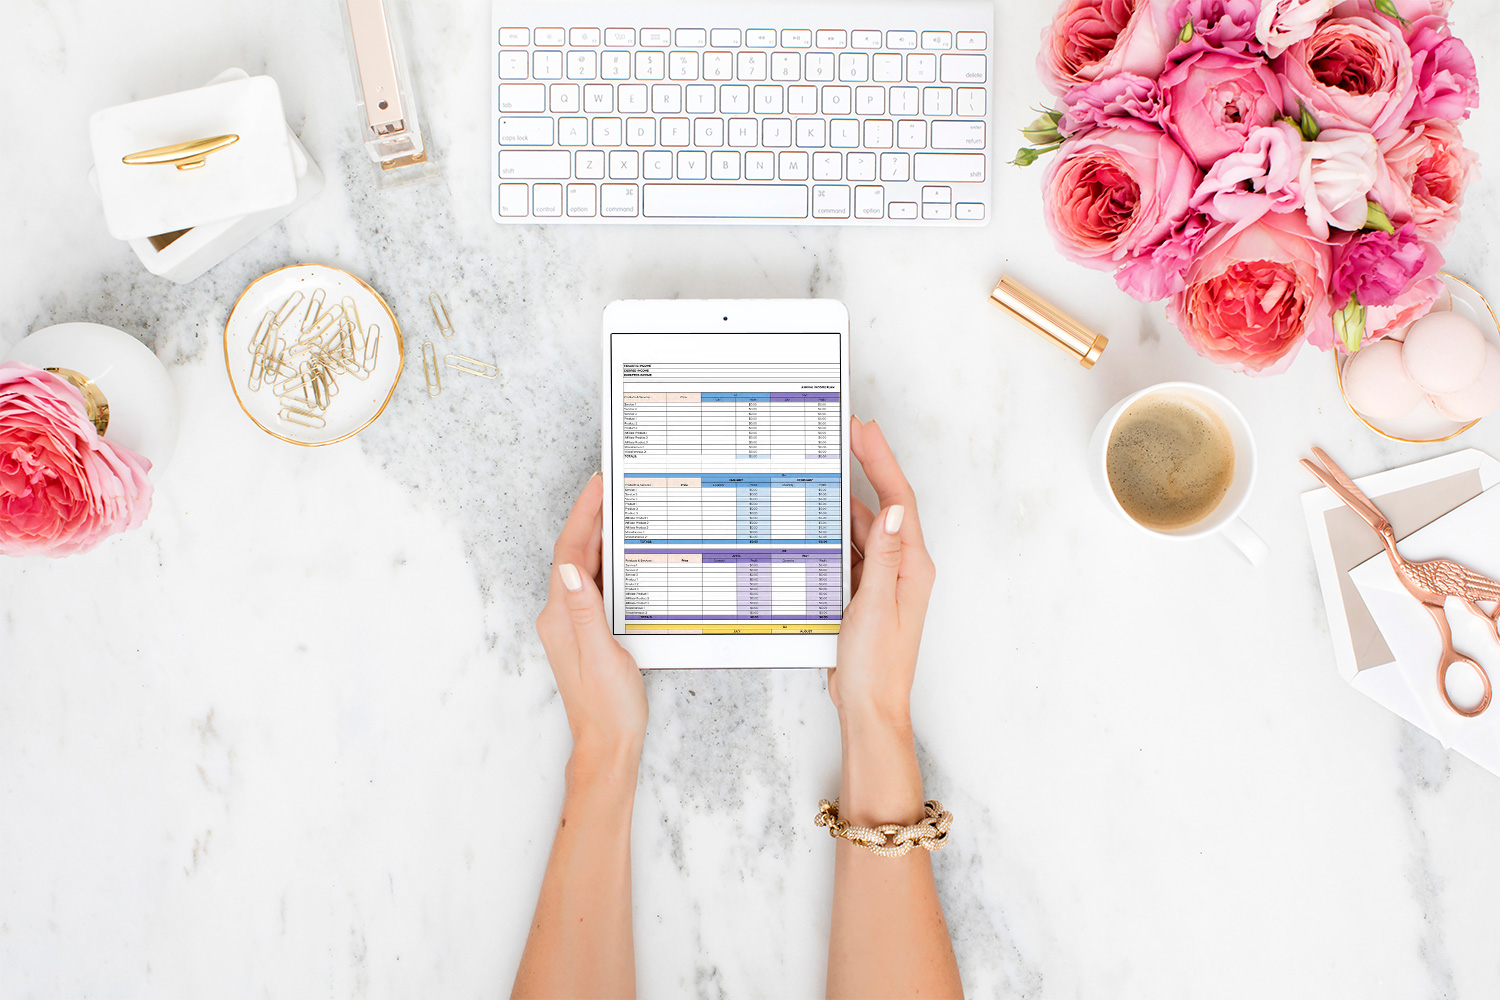 Plan and grow your business like a pro with the Income Planner and Brand Growth Tracker Bundle.   This bundle includes both the income planner and brand growth tracker as well as the video walkthroughs for both spreadsheets.